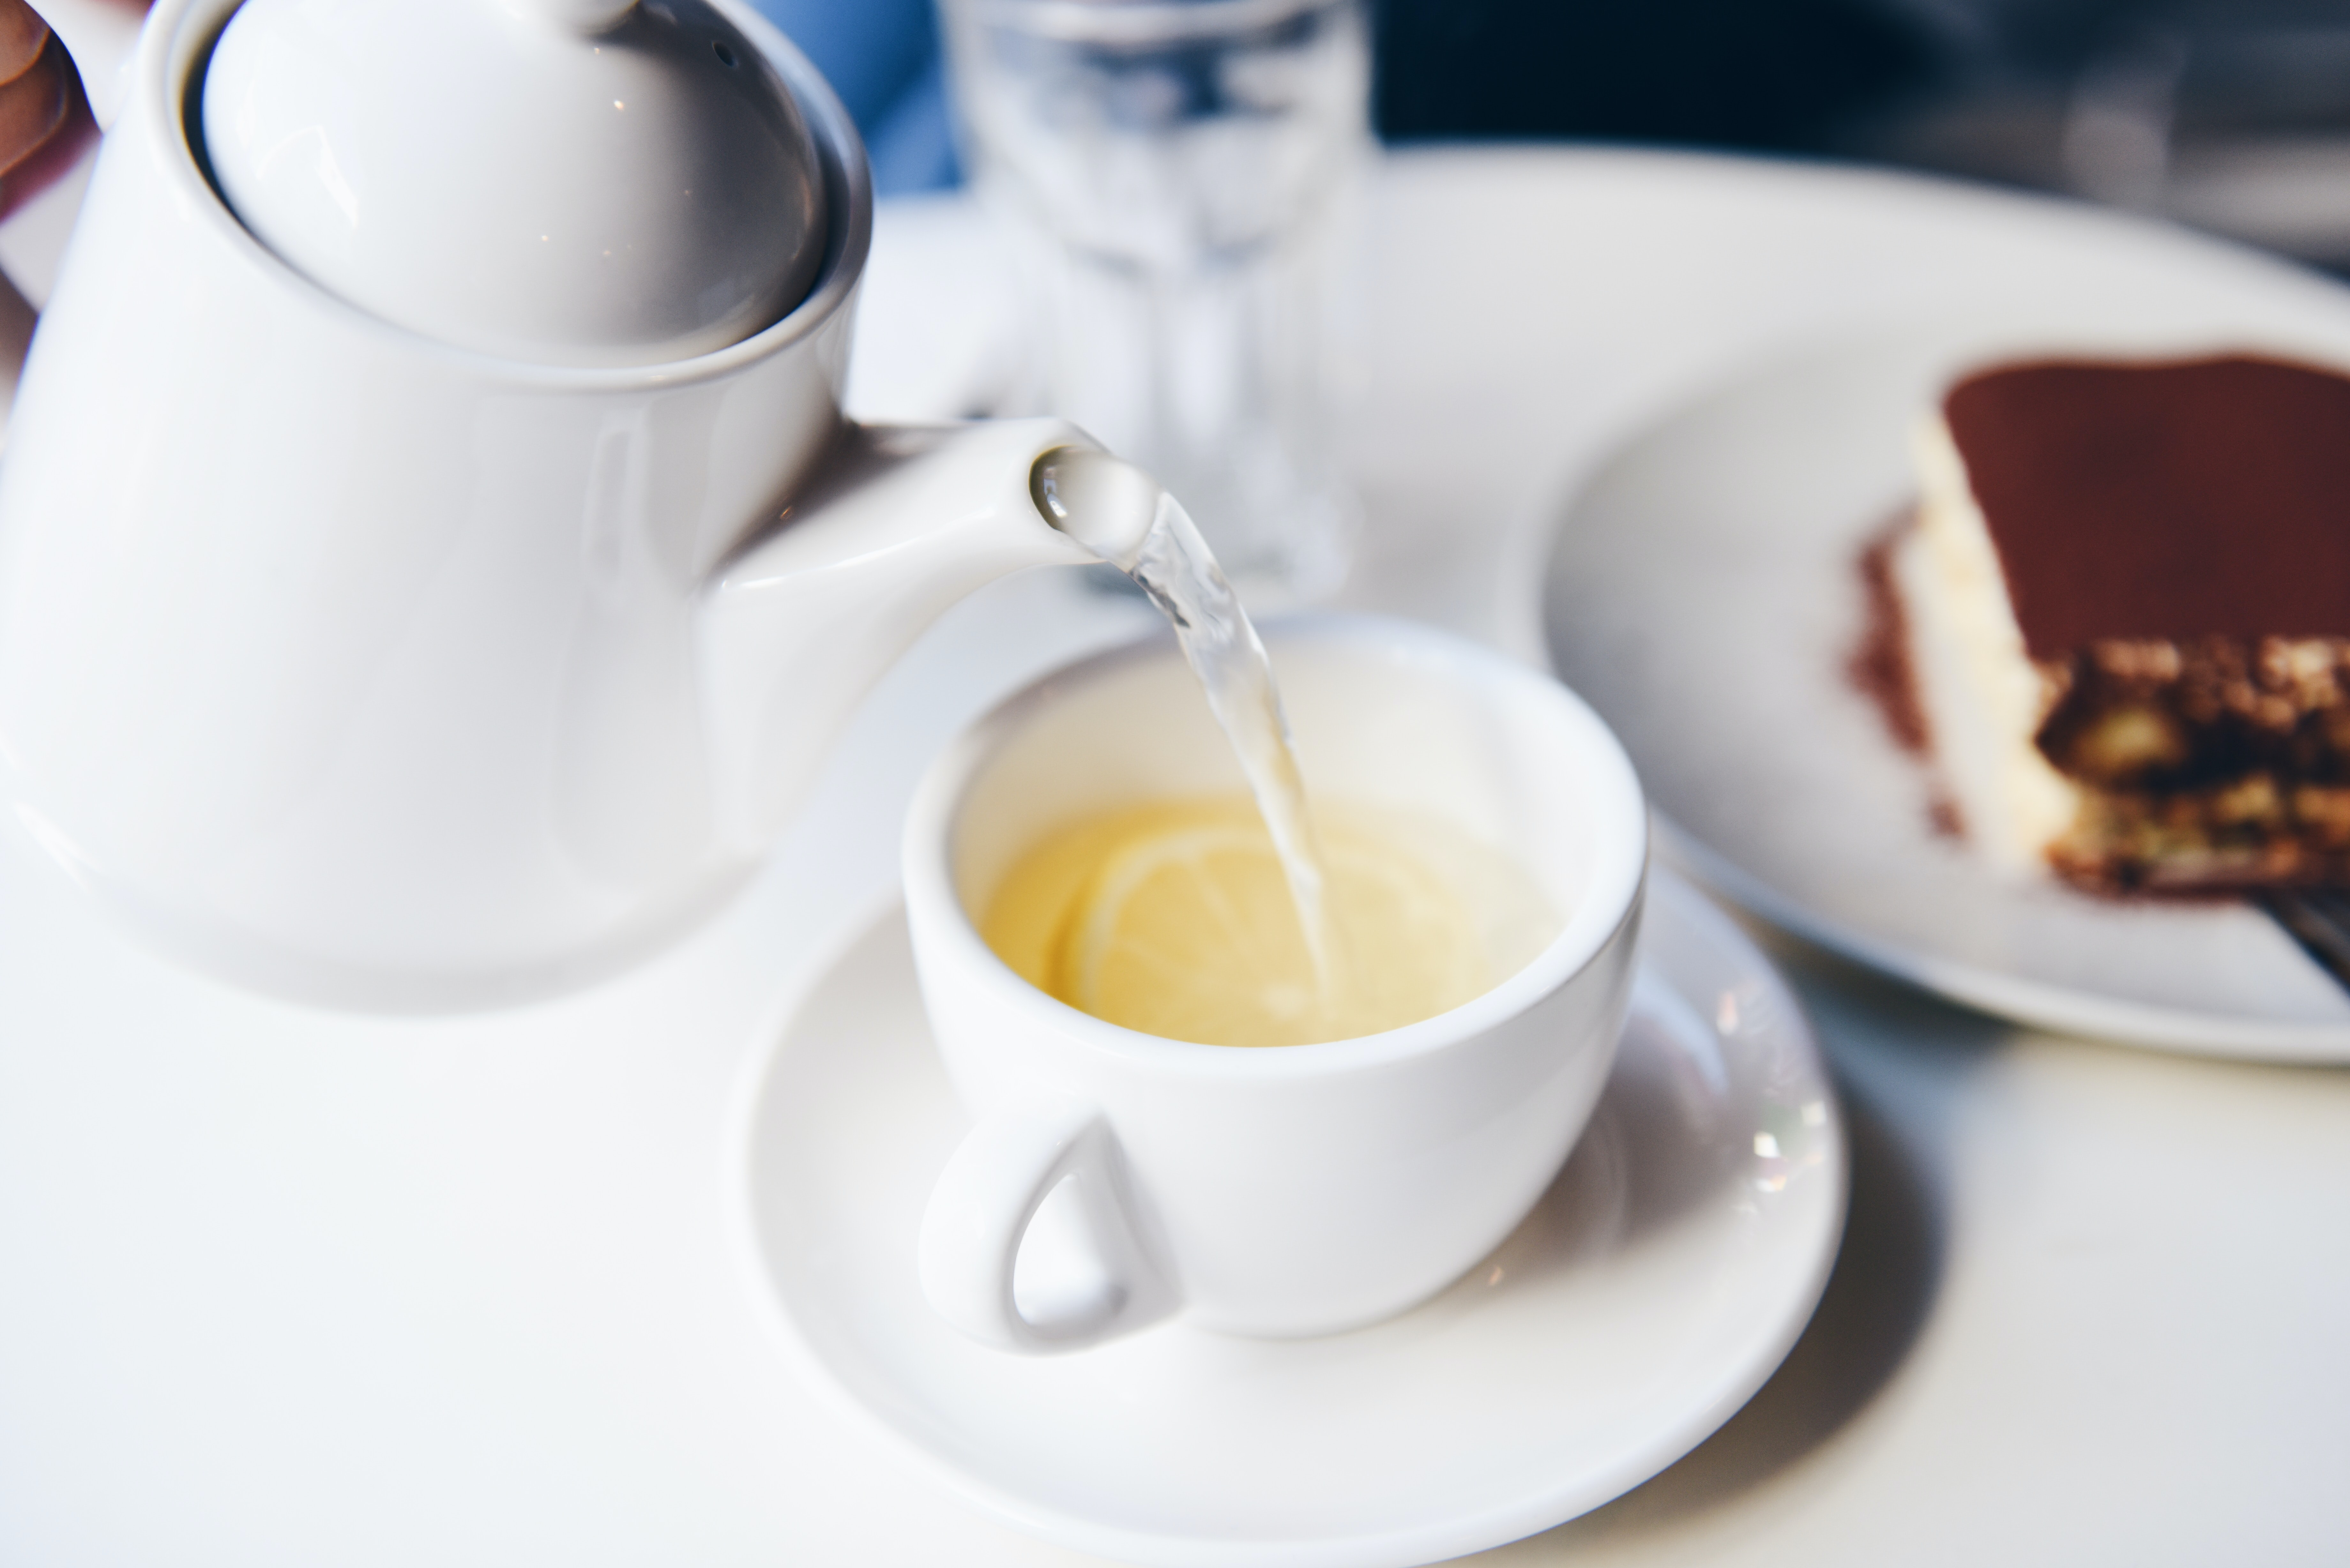 A person pouring a cup of tea into a teacup that has a lemon inside of it